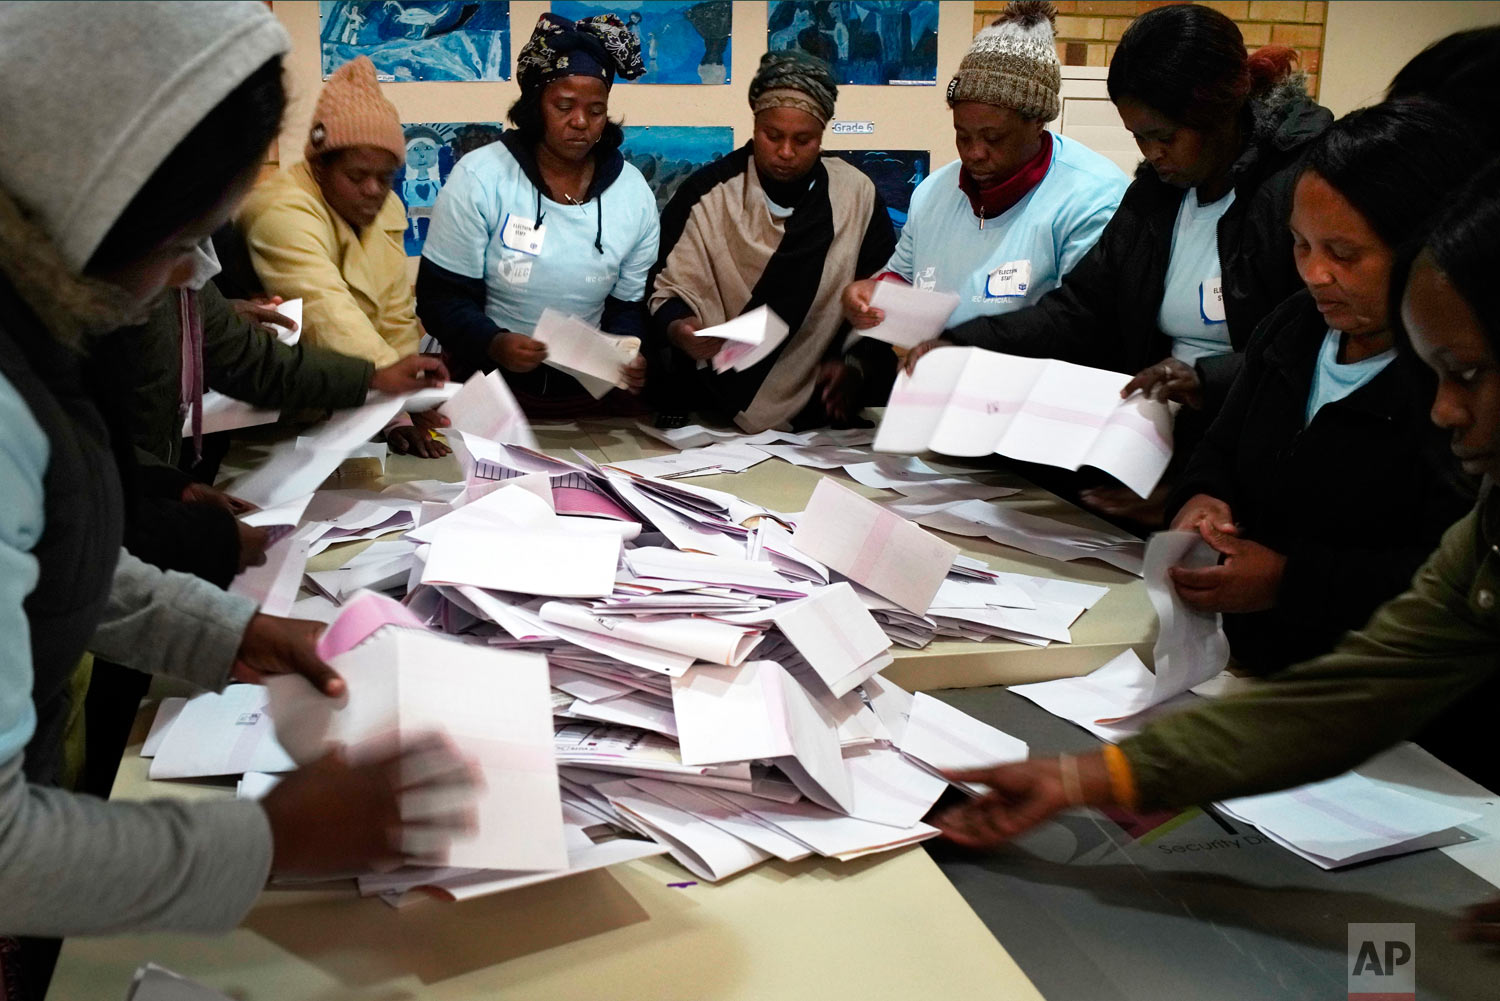 Electoral commission agents start counting the votes May 8, 2019, in Johannesburg, South Africa. (AP Photo/Jerome Delay)